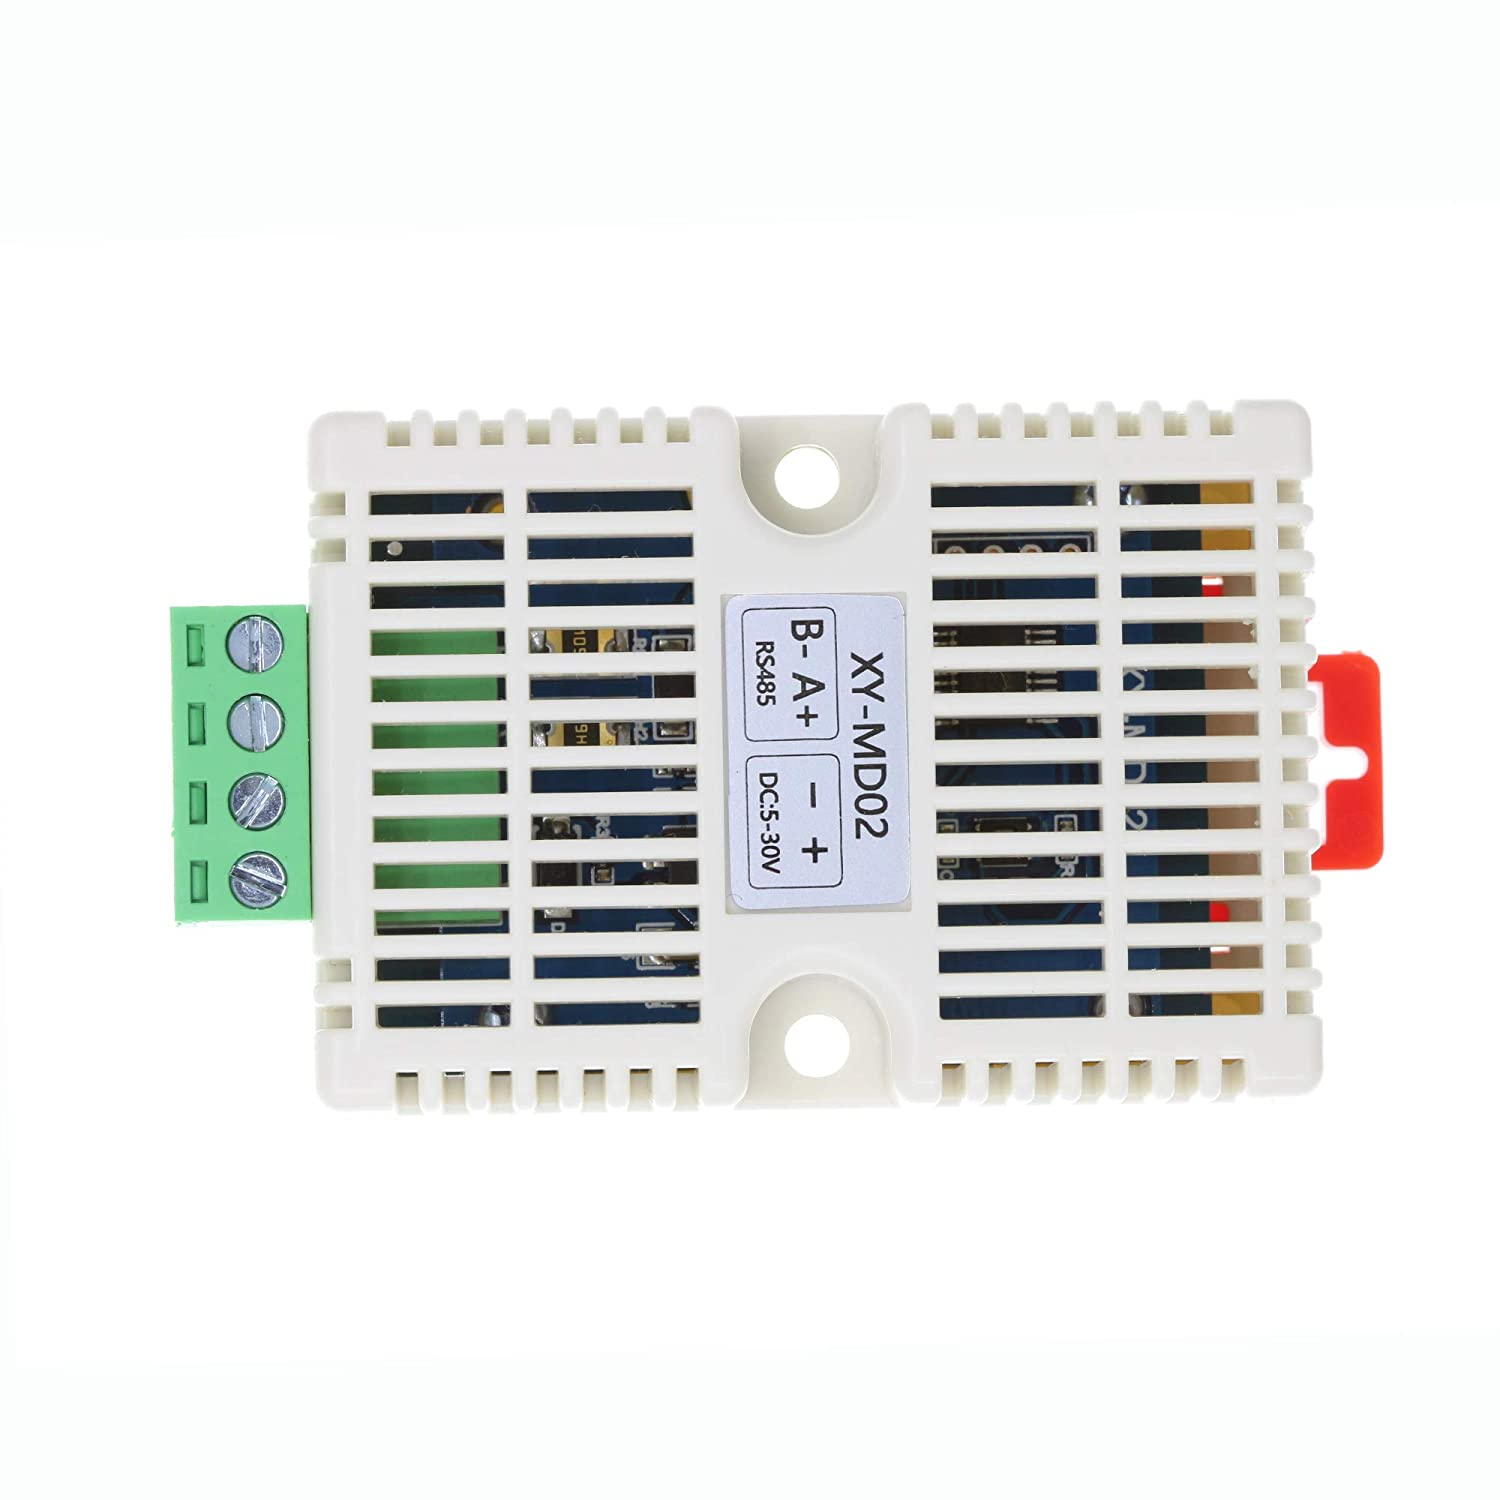 Temperature Humidity Transmitter SHT20 Free Shipping New High Sensor Mon Cheap super special price Precision